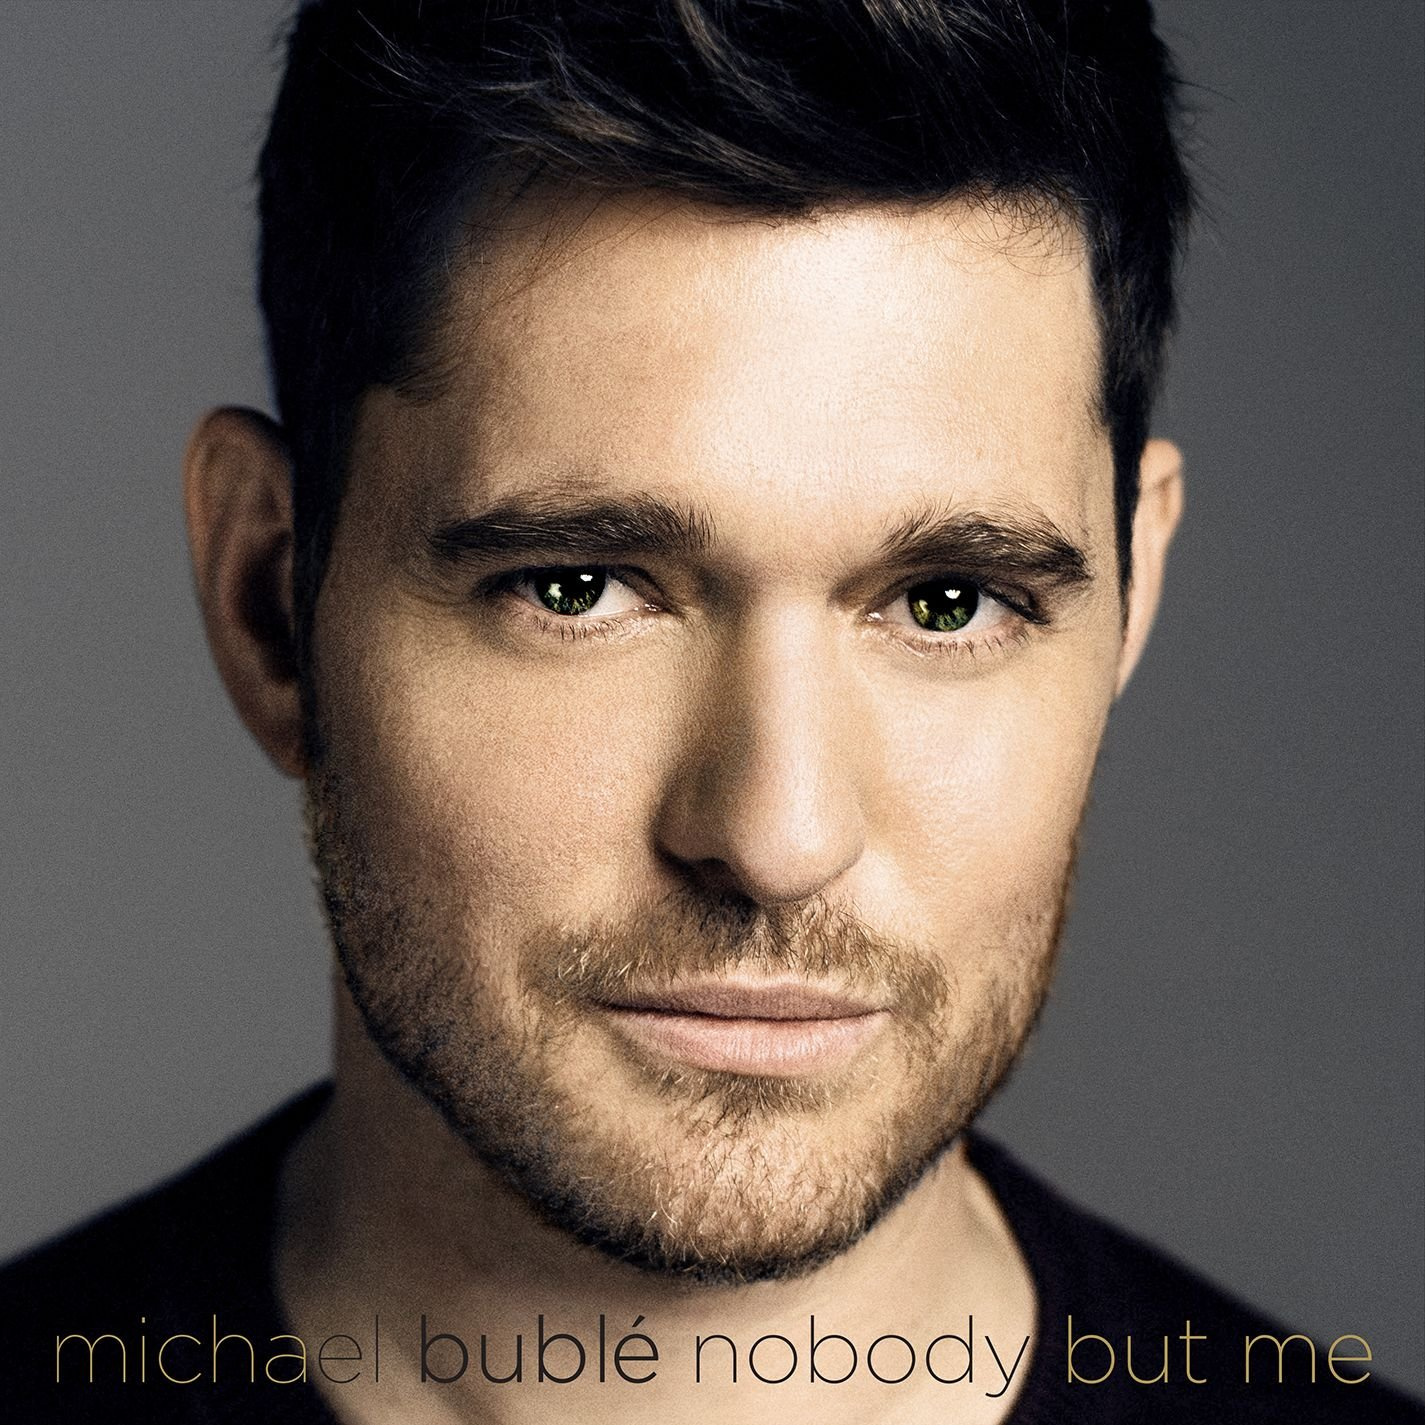 Michael Bublé - Nobody But Me (Deluxe) - Amazon.com Music